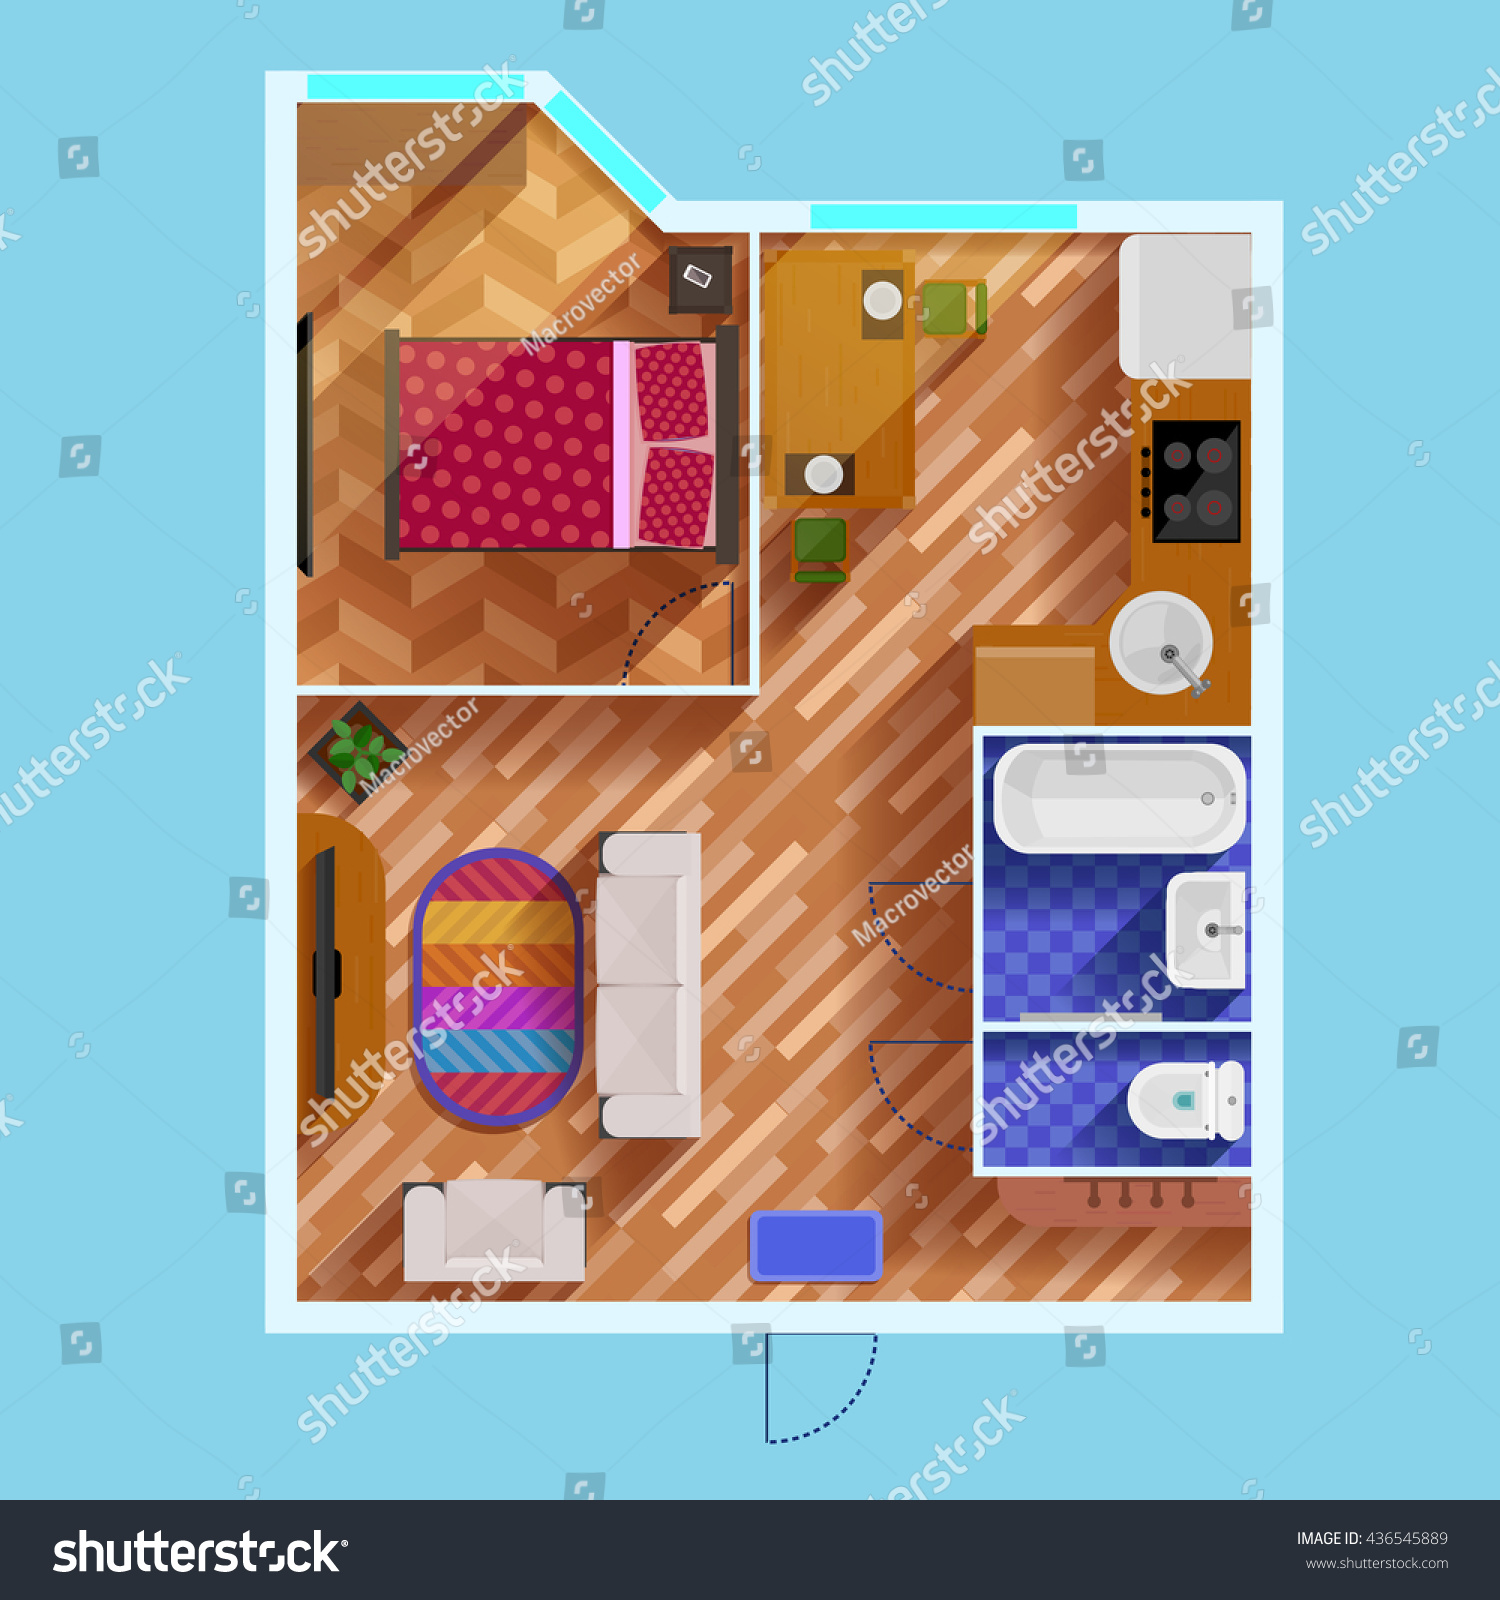 Colorful Floor Plan Apartment One Bedroom Stock Vector Royalty Free 436545889